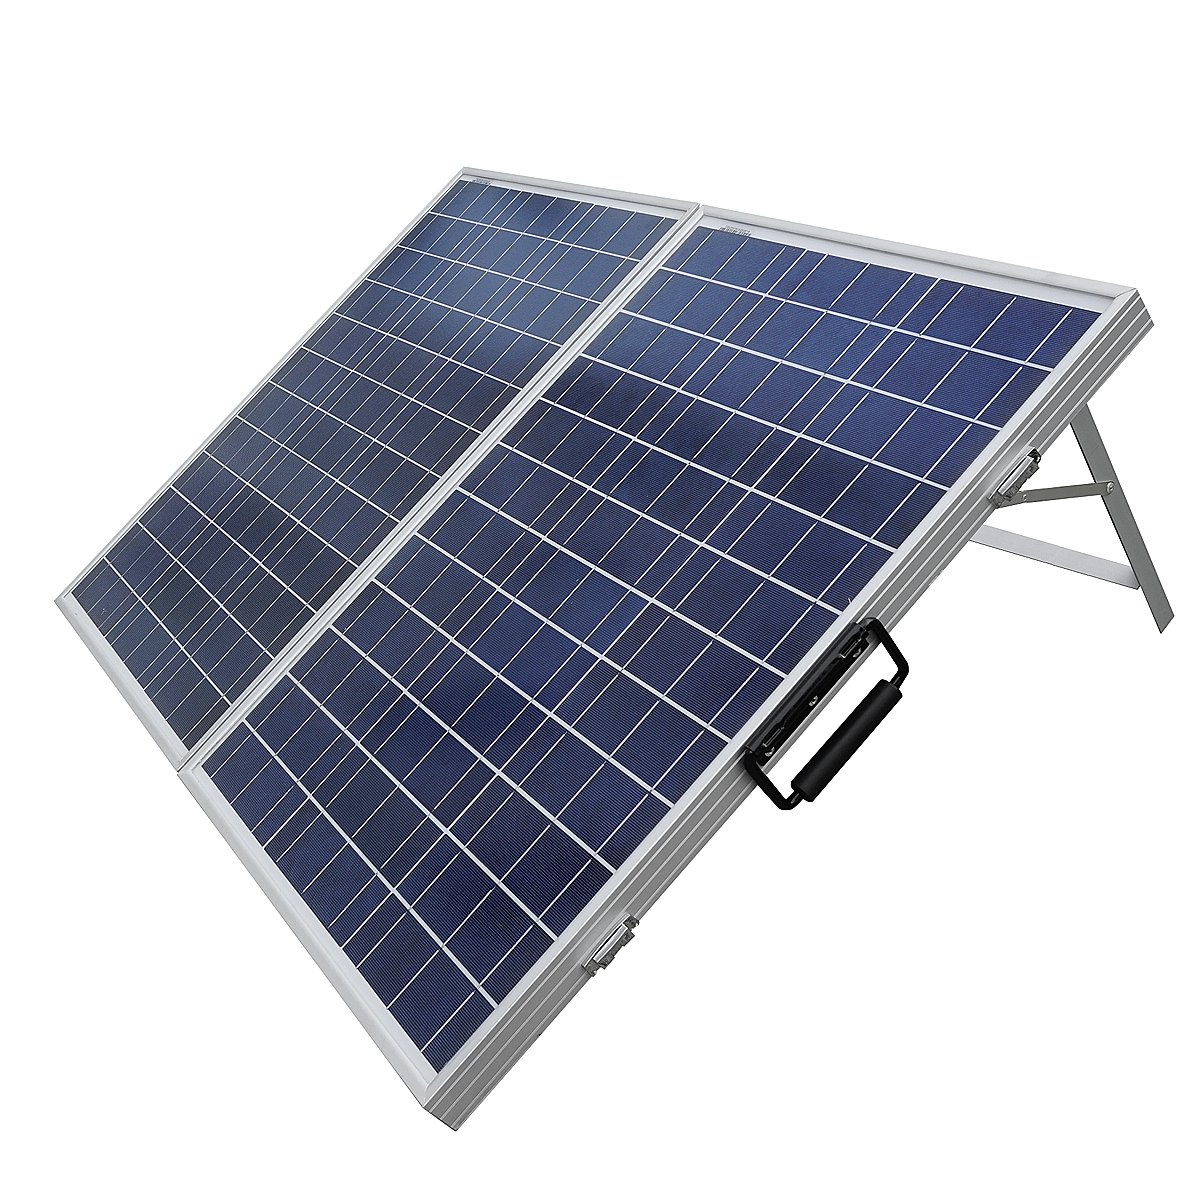 eco worthy 100w solarmodul 12v tragbar solarpanel 12. Black Bedroom Furniture Sets. Home Design Ideas